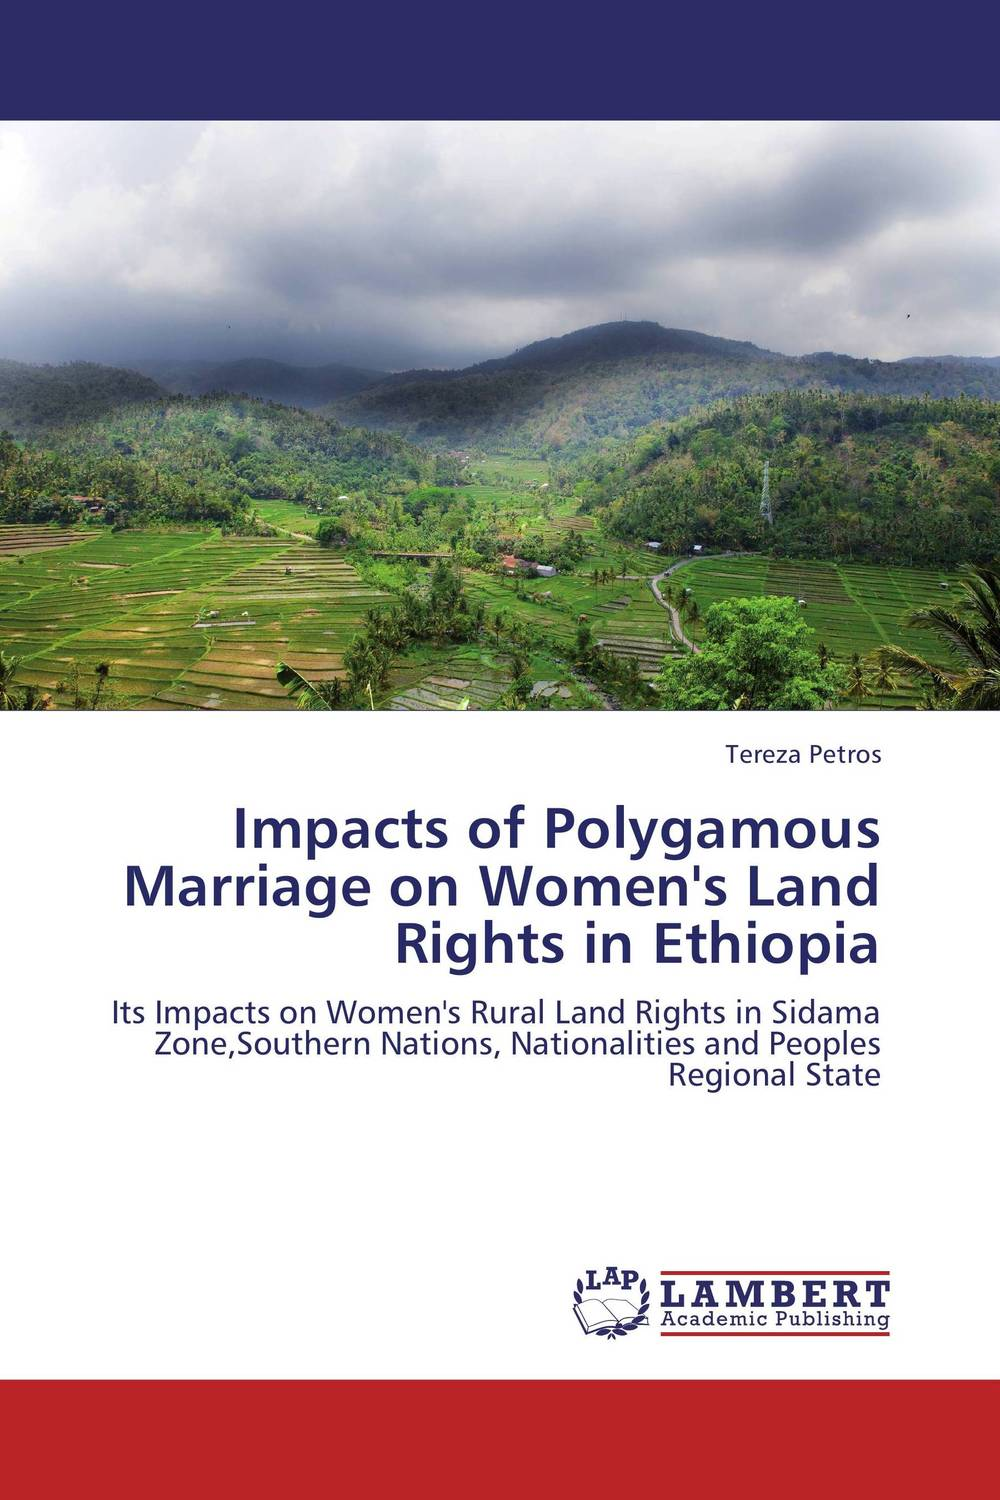 Impacts of Polygamous Marriage on Women's Land Rights in Ethiopia